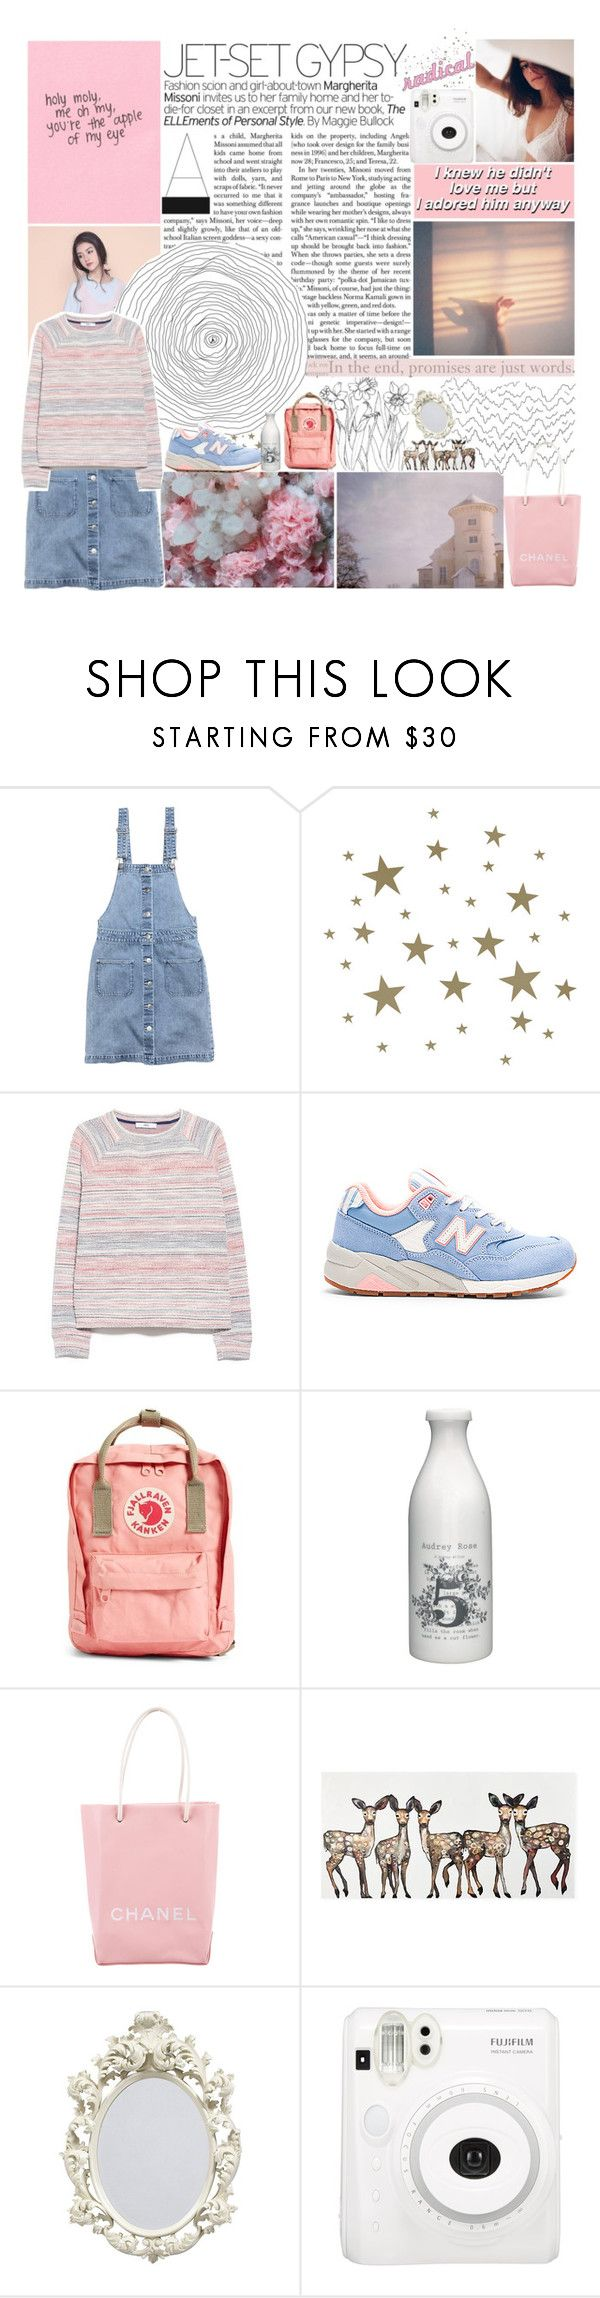 """""""Sunset lover..."""" by cassie-010603 ❤ liked on Polyvore featuring H&M, ferm LIVING, MANGO, New Balance, Fjällräven, GreenGate, Chanel, WALL, Fuji and KEEP ME"""